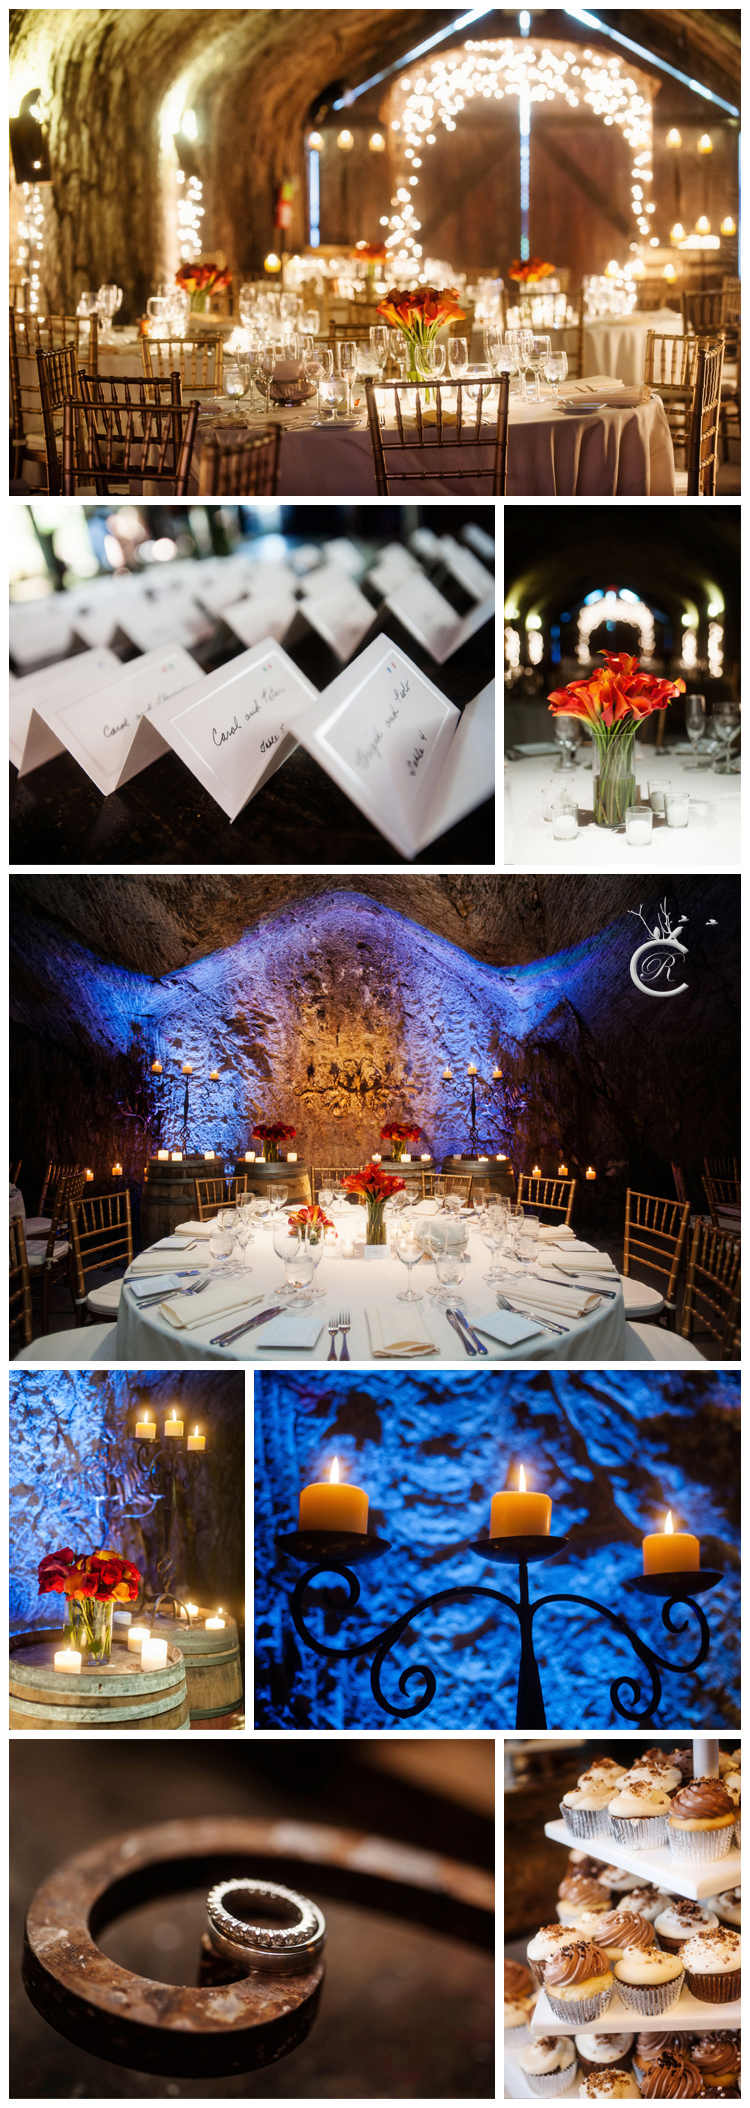 Wine cave wedding • Carrie Richards Photography